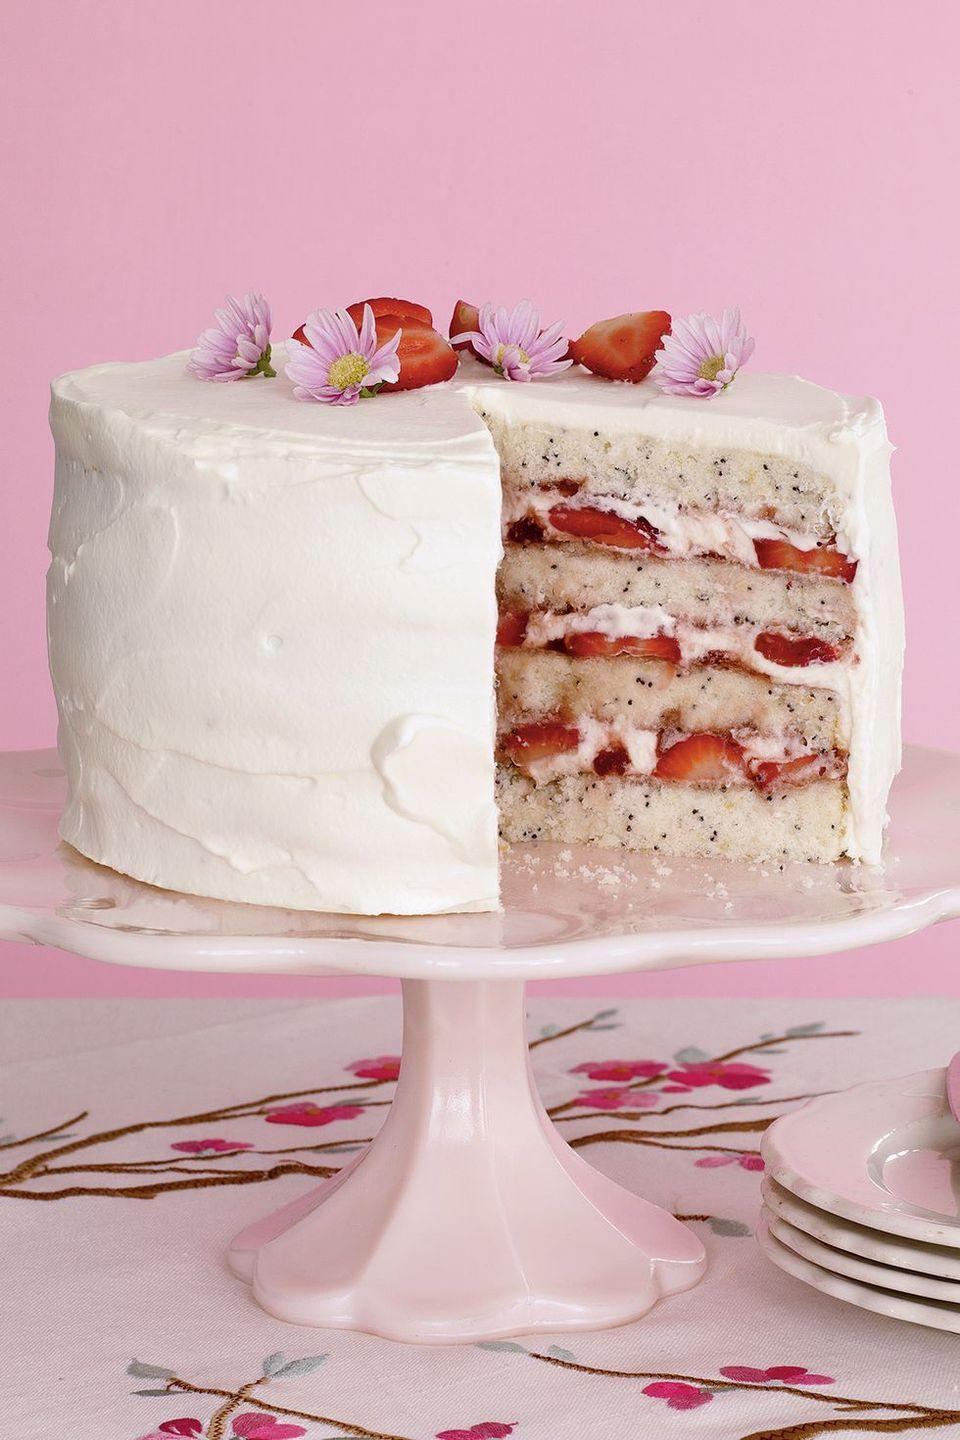 "<p>As if lemon poppy seed cake wasn't delicious on its own, this version adds layers of fresh strawberries and cream to give it <em>more </em>sweetness. </p><p><em><a href=""https://www.womansday.com/food-recipes/food-drinks/recipes/a10913/lemon-poppy-seed-cake-strawberries-recipe-122355/"" rel=""nofollow noopener"" target=""_blank"" data-ylk=""slk:Get the recipe for Woman's Day »"" class=""link rapid-noclick-resp"">Get the recipe for Woman's Day »</a></em></p><p><strong>RELATED:</strong> <a href=""https://www.goodhousekeeping.com/food-recipes/dessert/g4299/strawberry-desserts/"" rel=""nofollow noopener"" target=""_blank"" data-ylk=""slk:Sweet Strawberry Desserts for Spring and Summer"" class=""link rapid-noclick-resp"">Sweet Strawberry Desserts for Spring and Summer</a></p>"